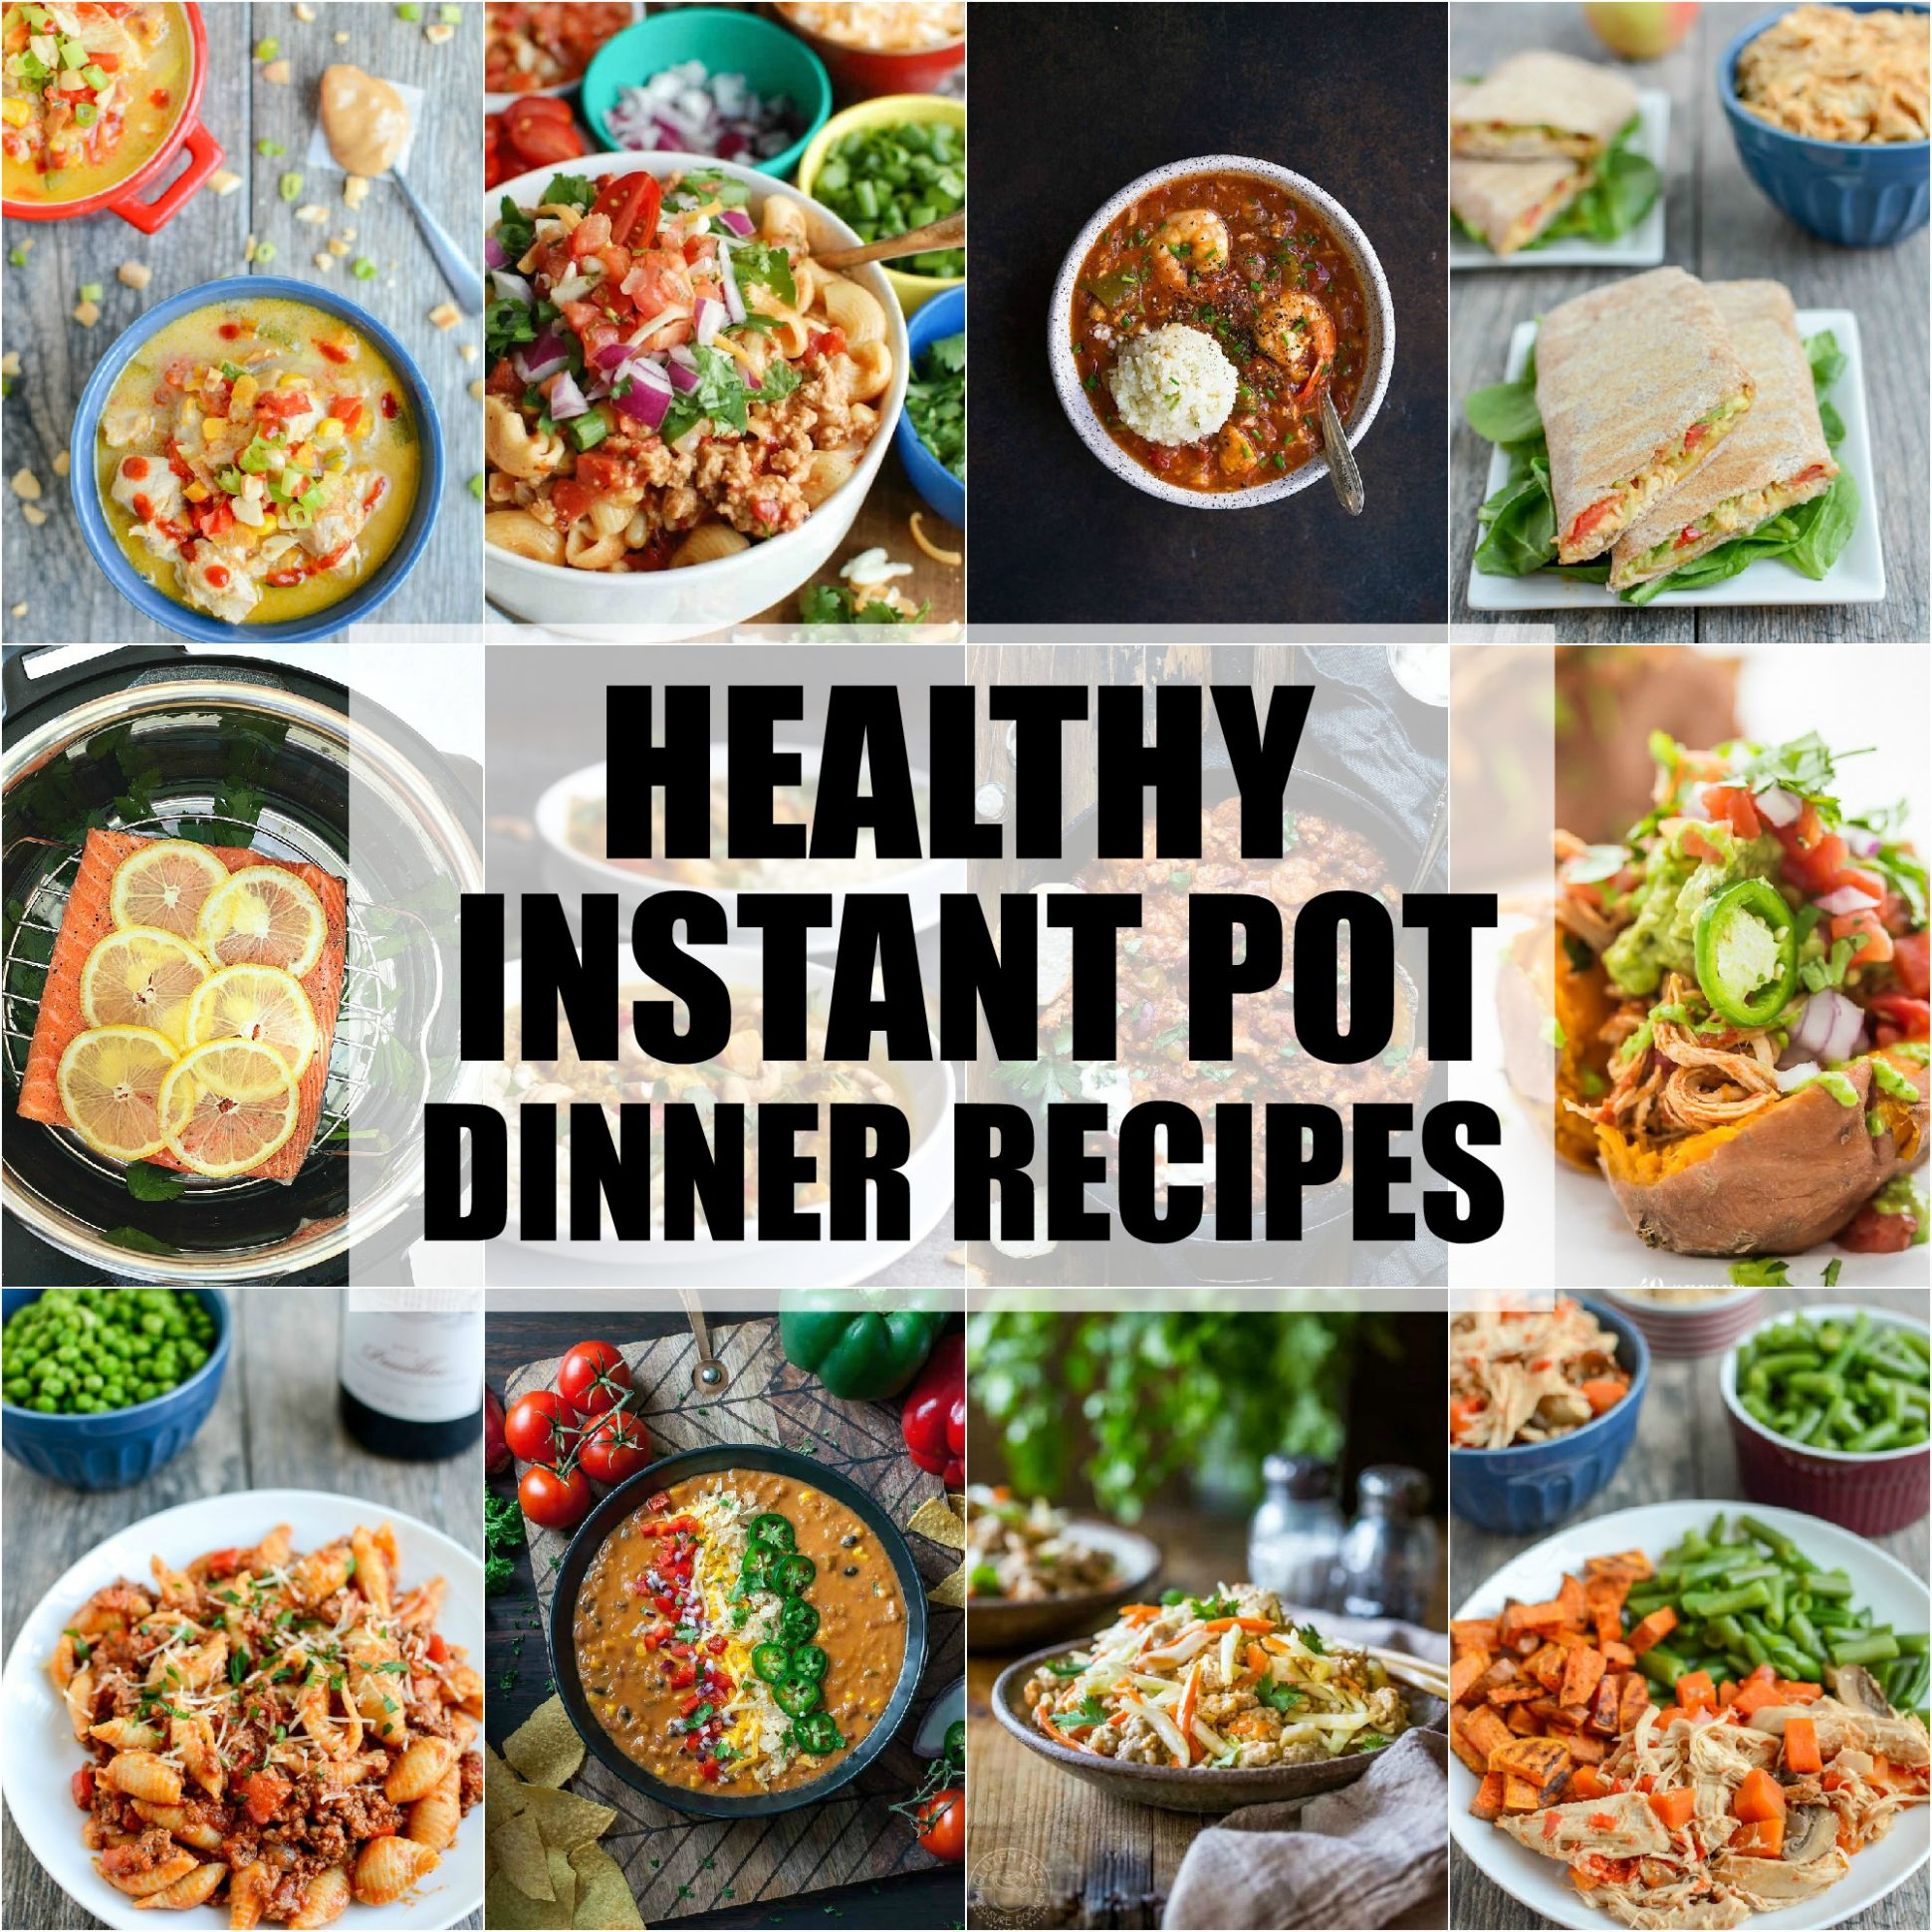 Healthy Instant Pot Dinner Recipes | The Lean Green Bean